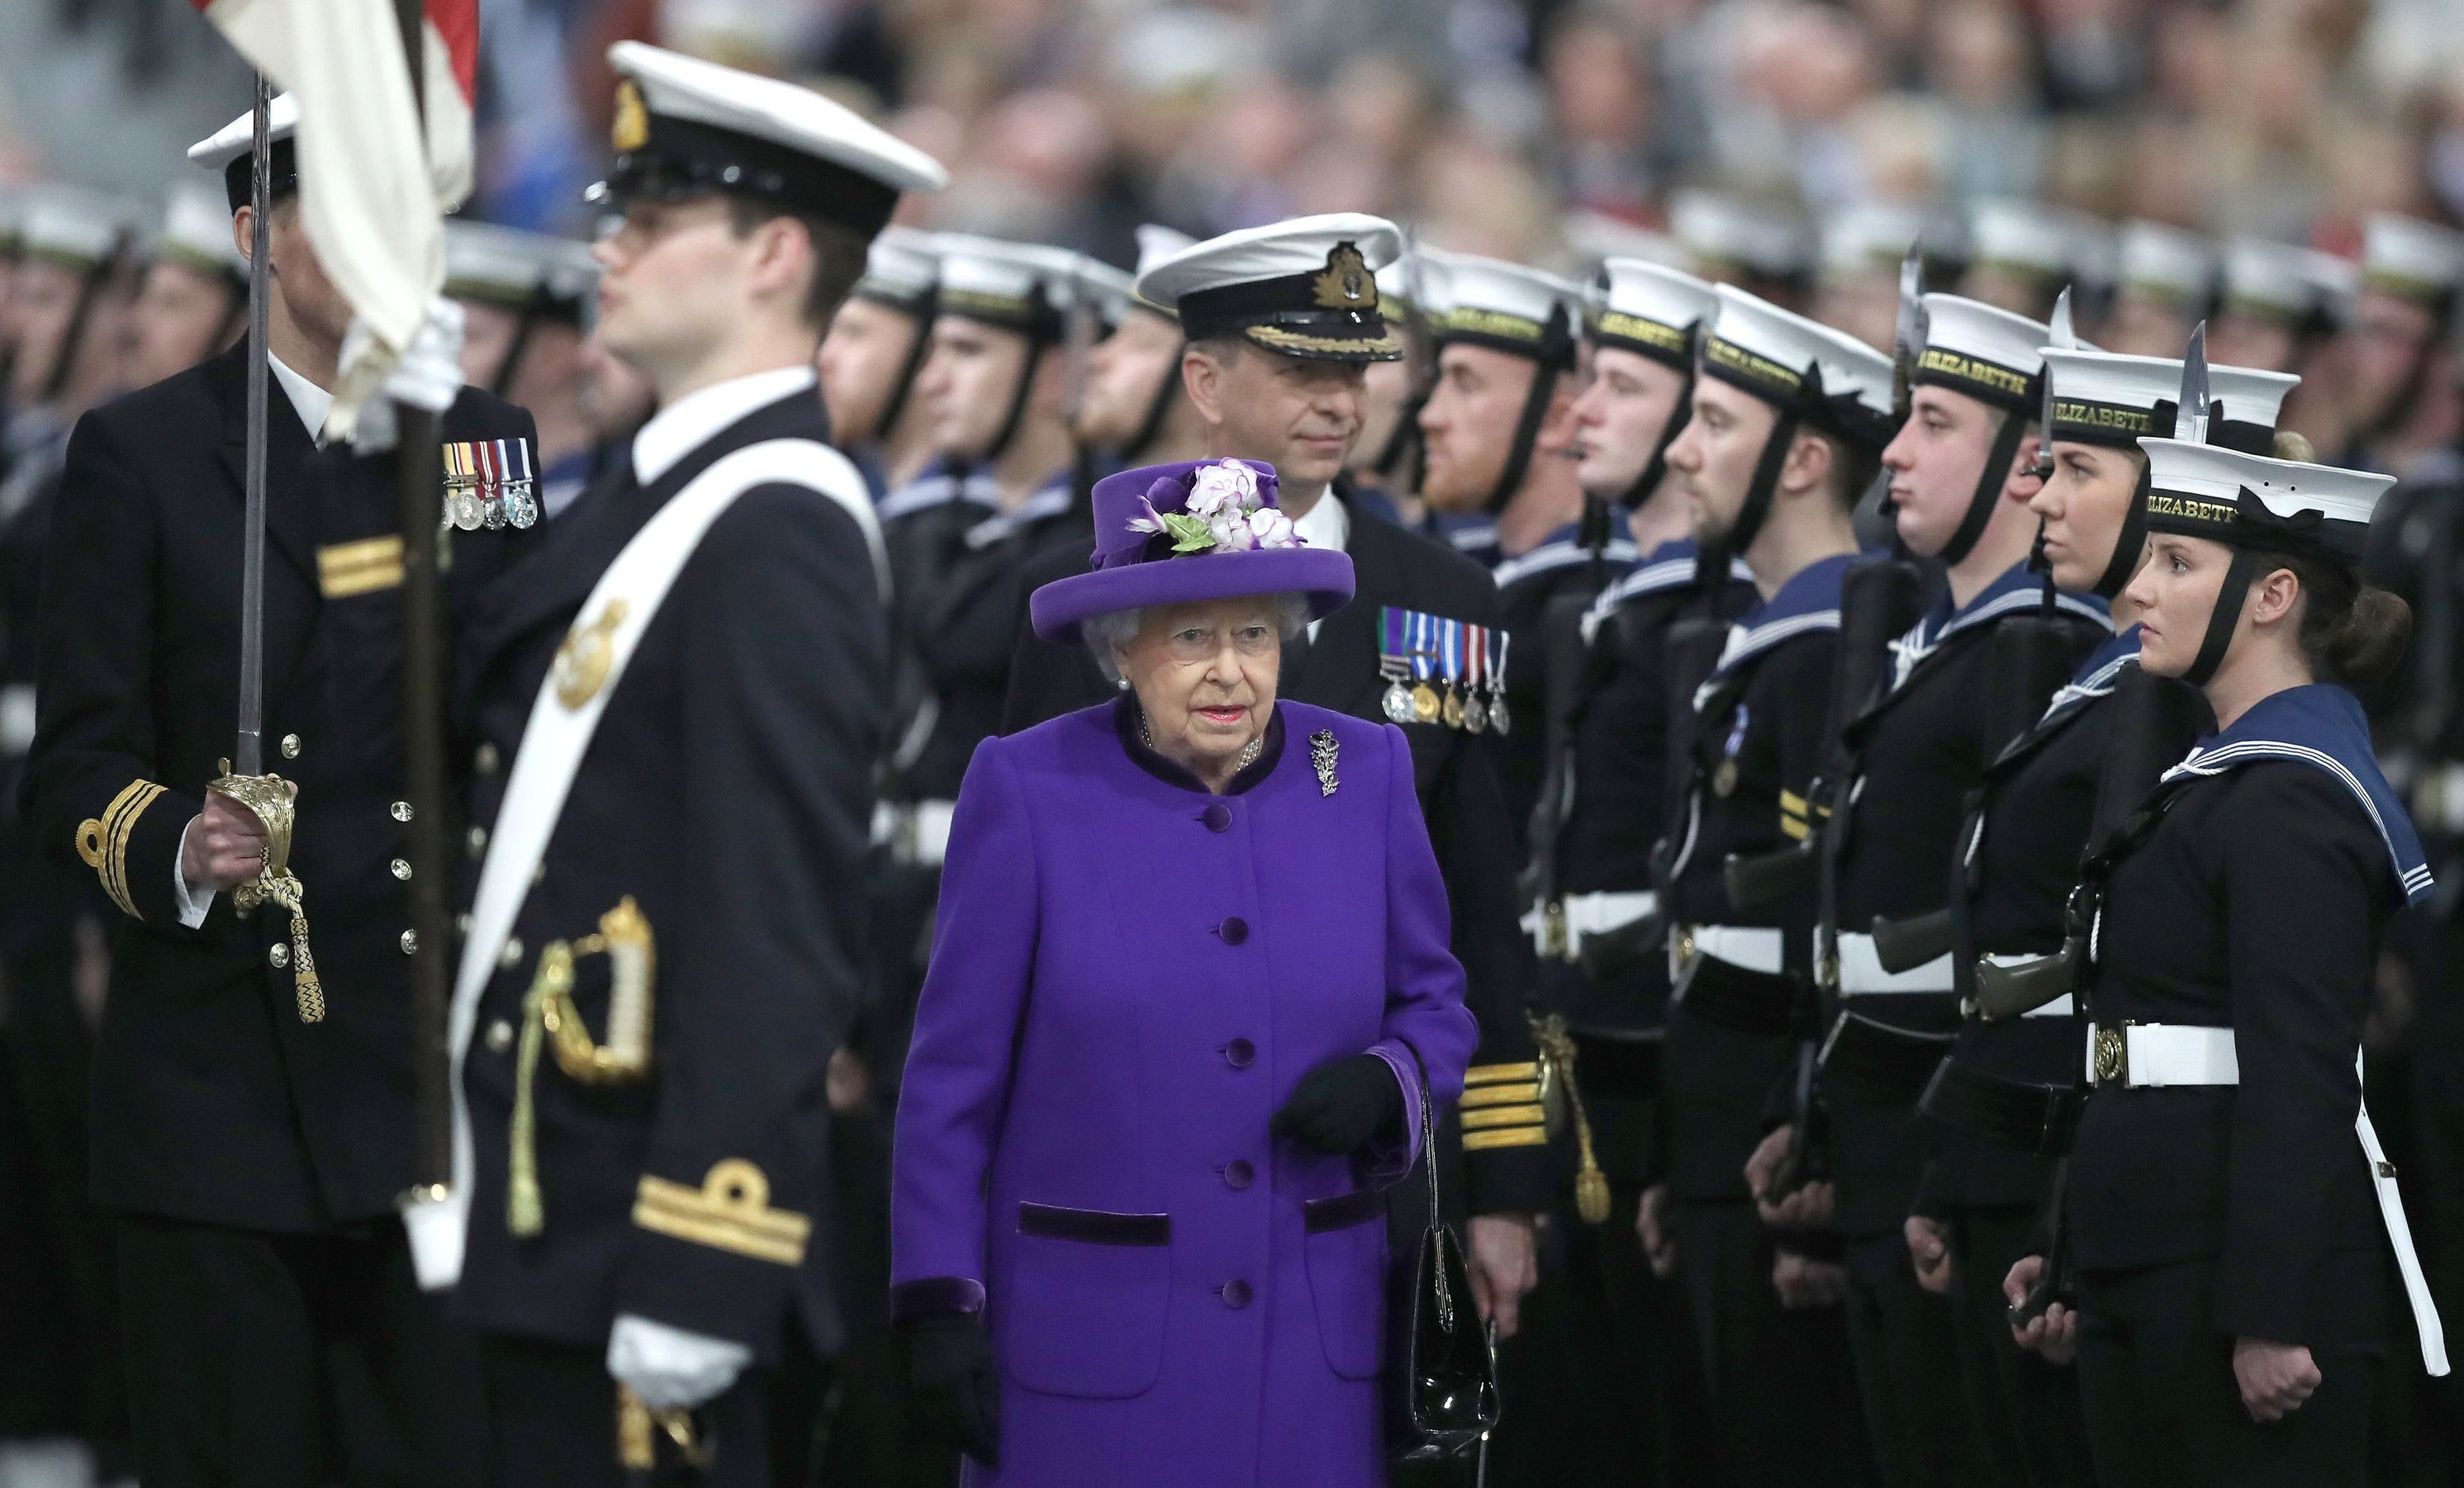 Queen Elizabeth II arrives for the commissioning ceremony of Britain's biggest and most powerful warship HMS Queen Elizabeth (Andrew Matthews/PA Wire)